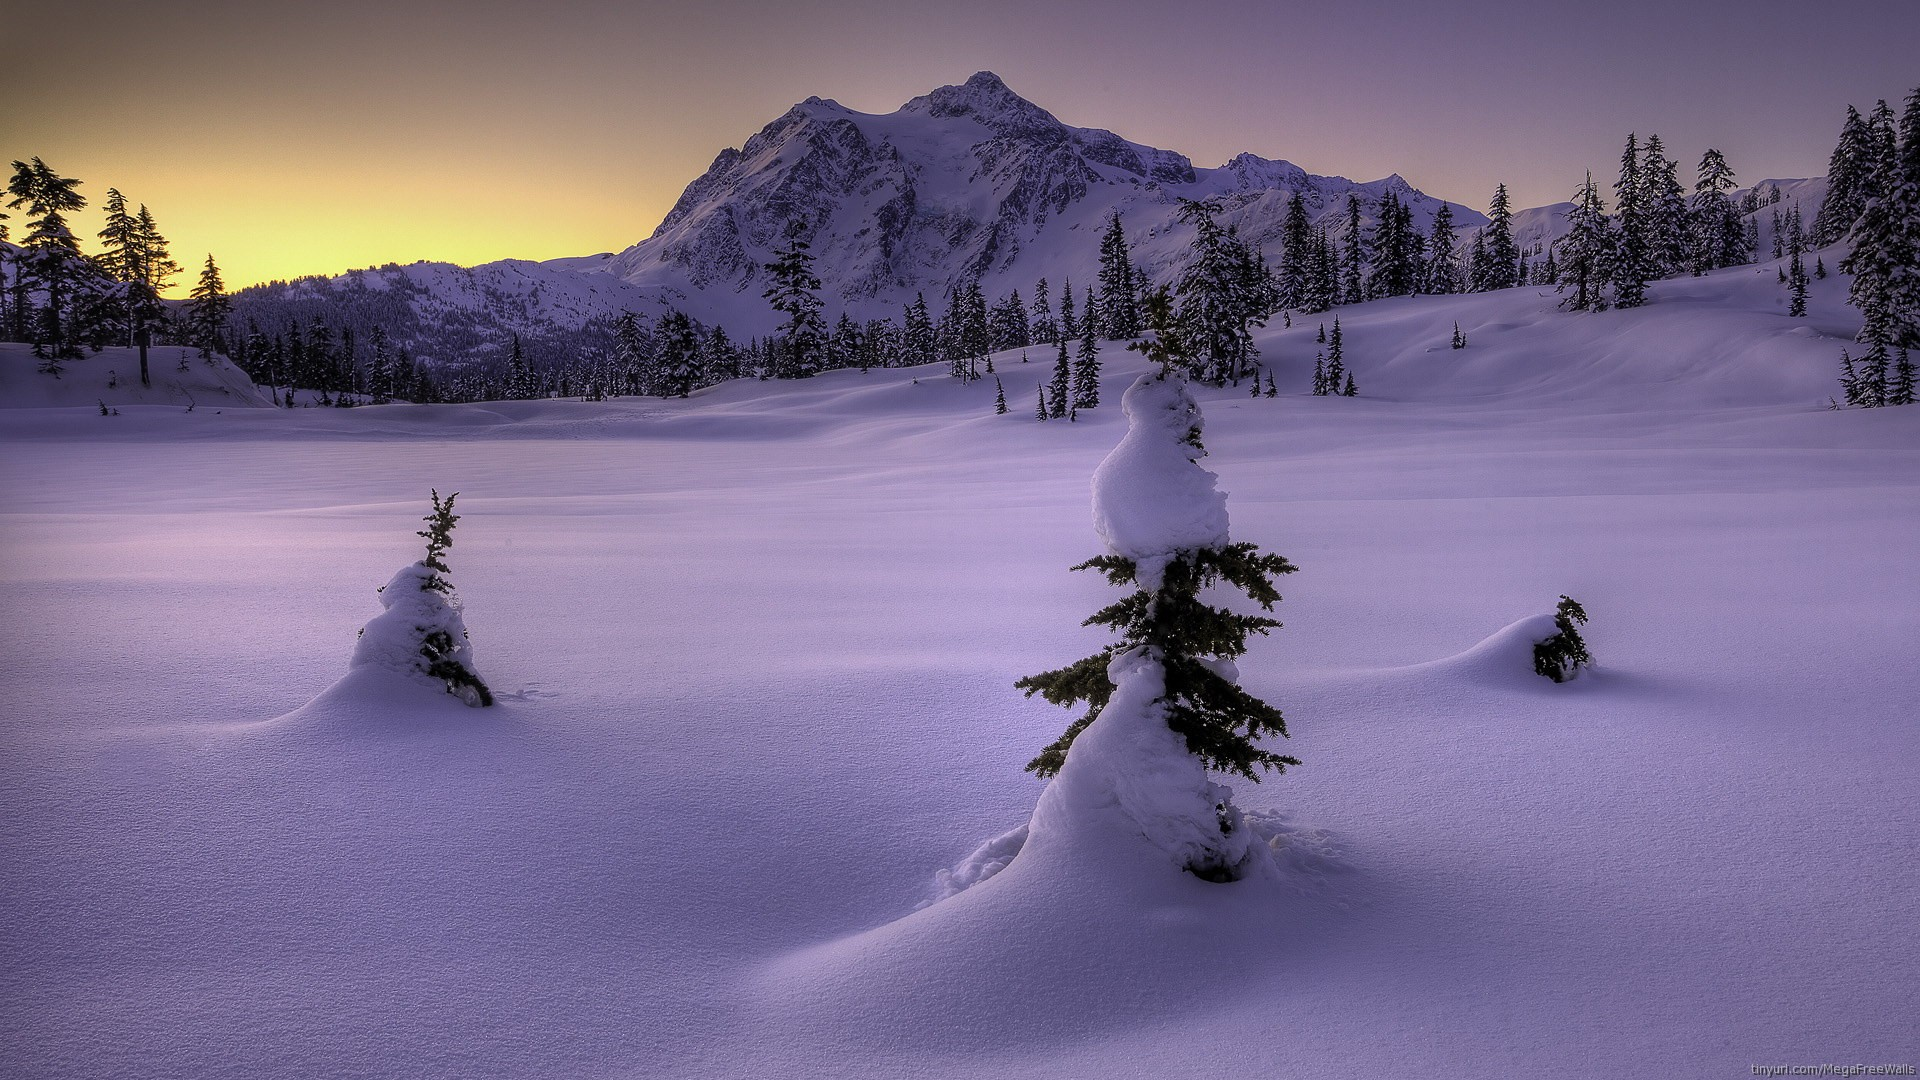 Snow Winter Landscape Mountain Hd Wallpaper North Cascades